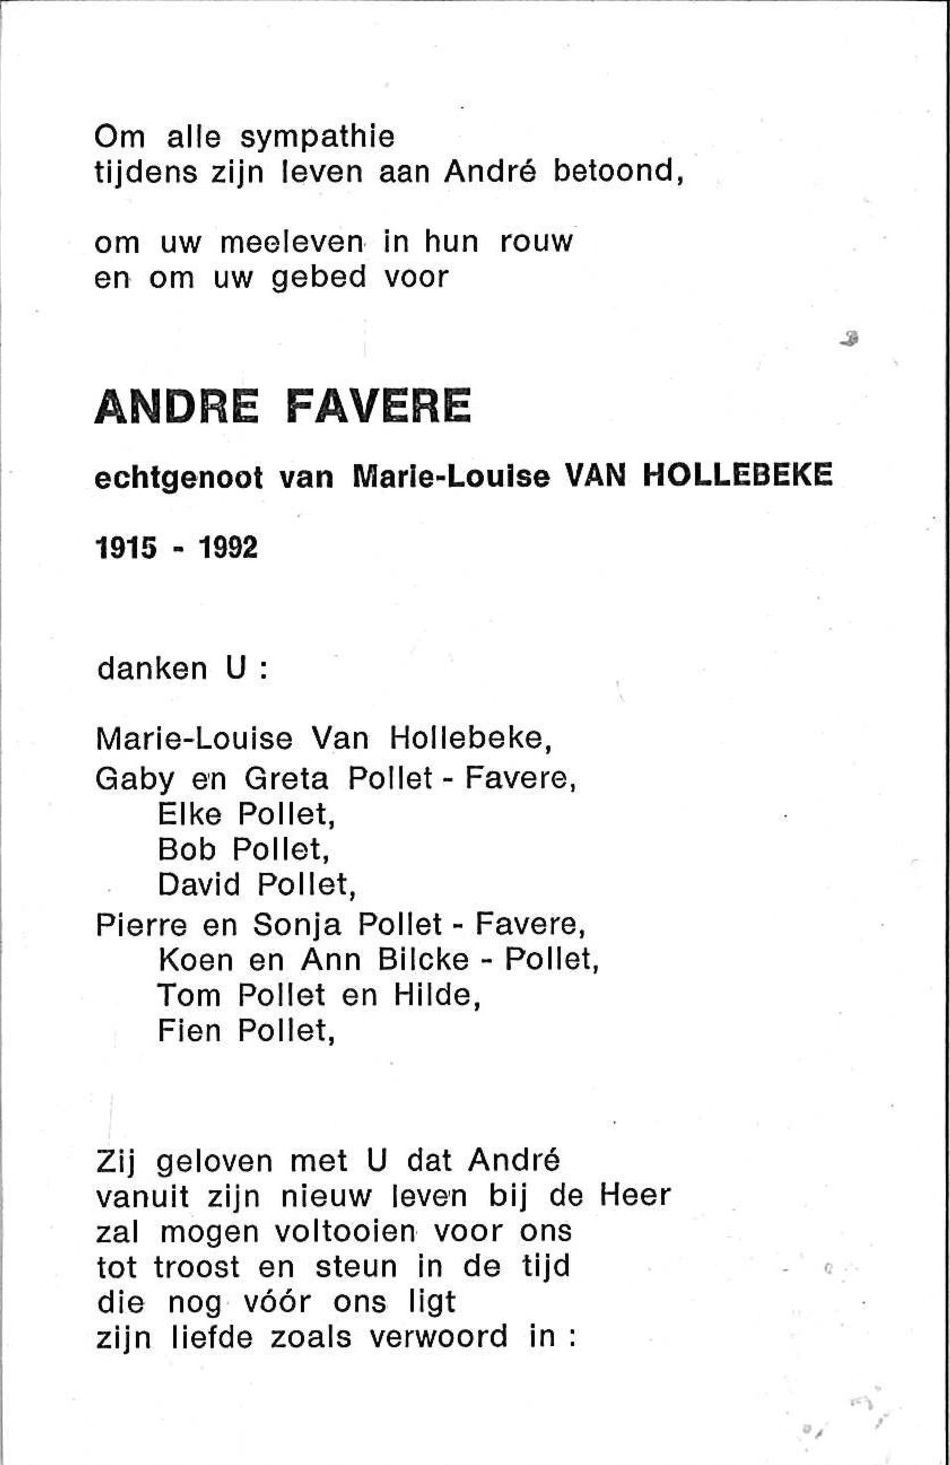 Andre Favere